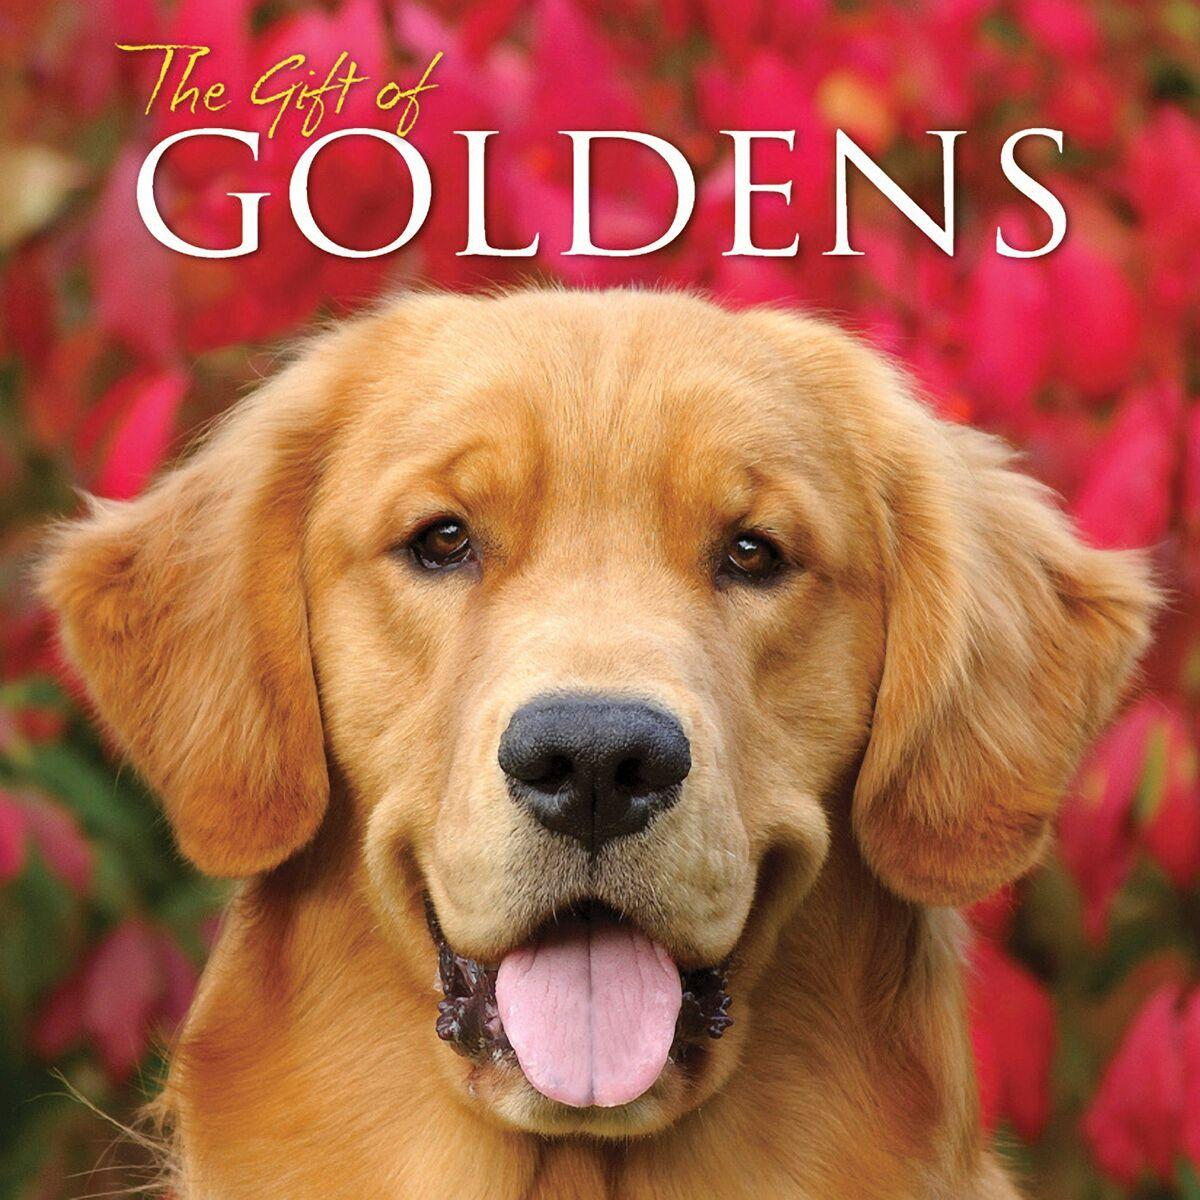 The Gift of Goldens (Other)